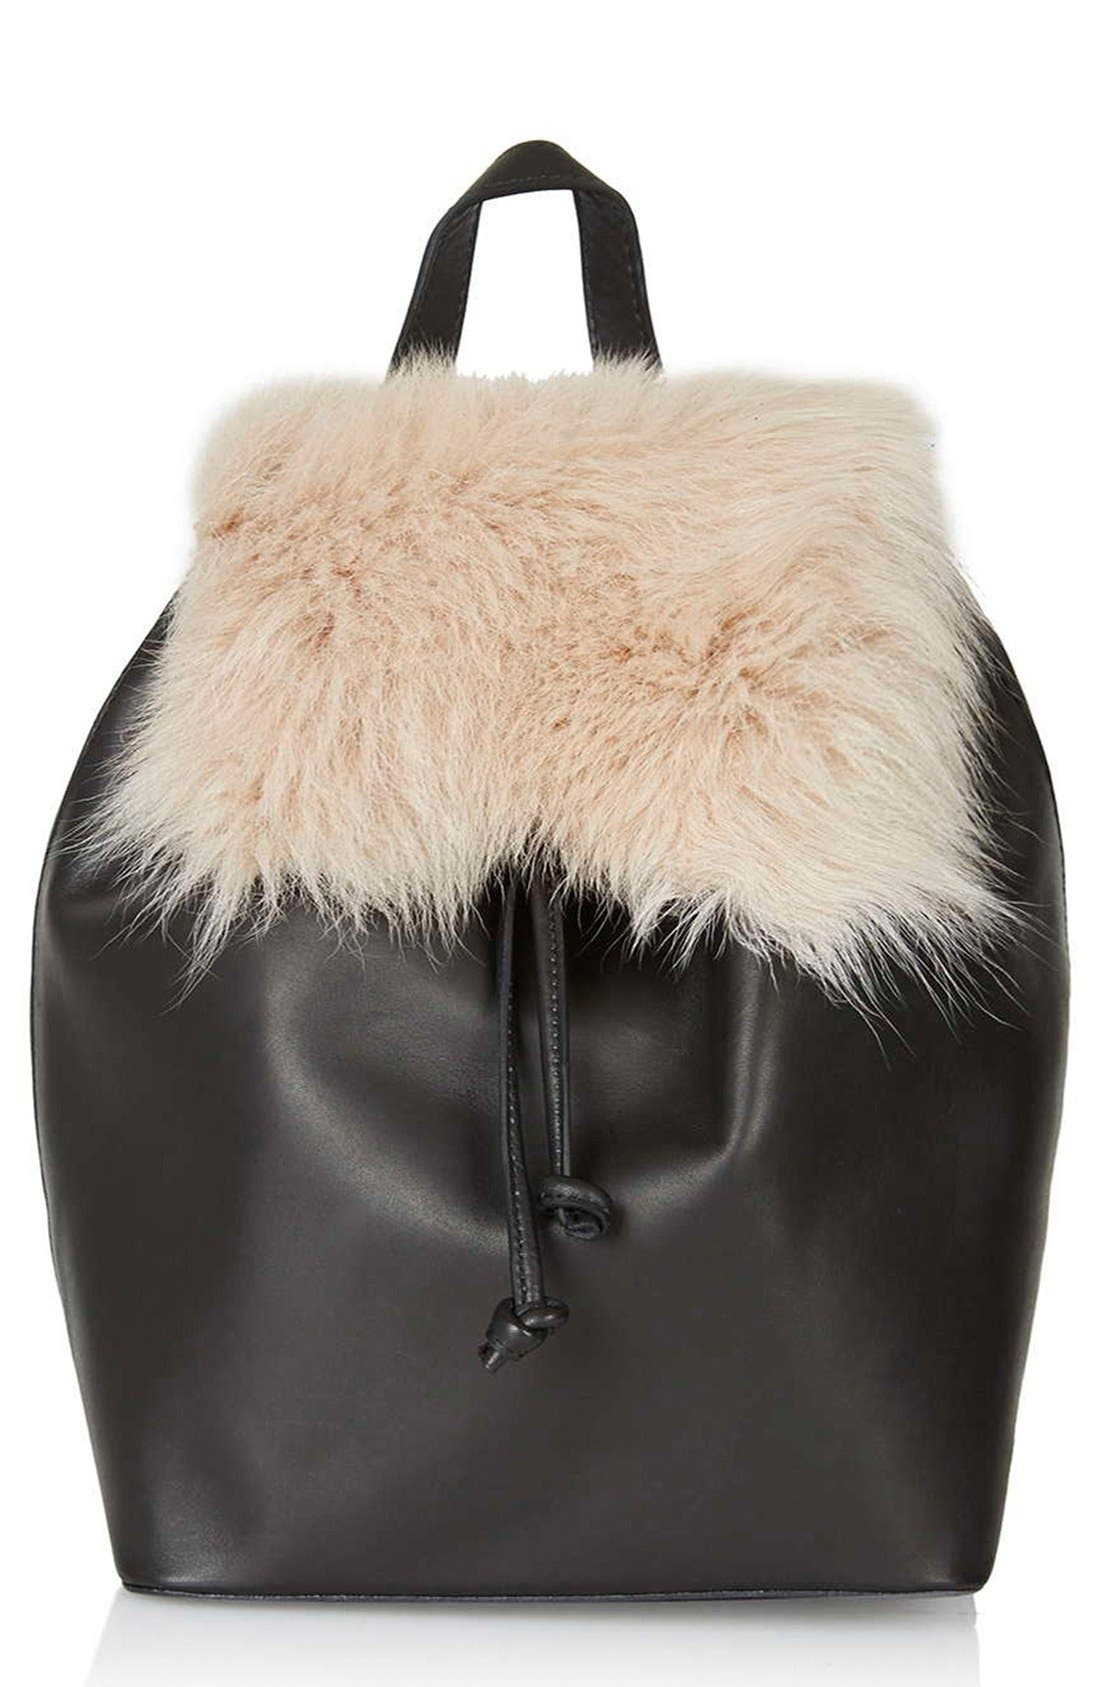 Shearling & Leather Backpack,                             Main thumbnail 1, color,                             250